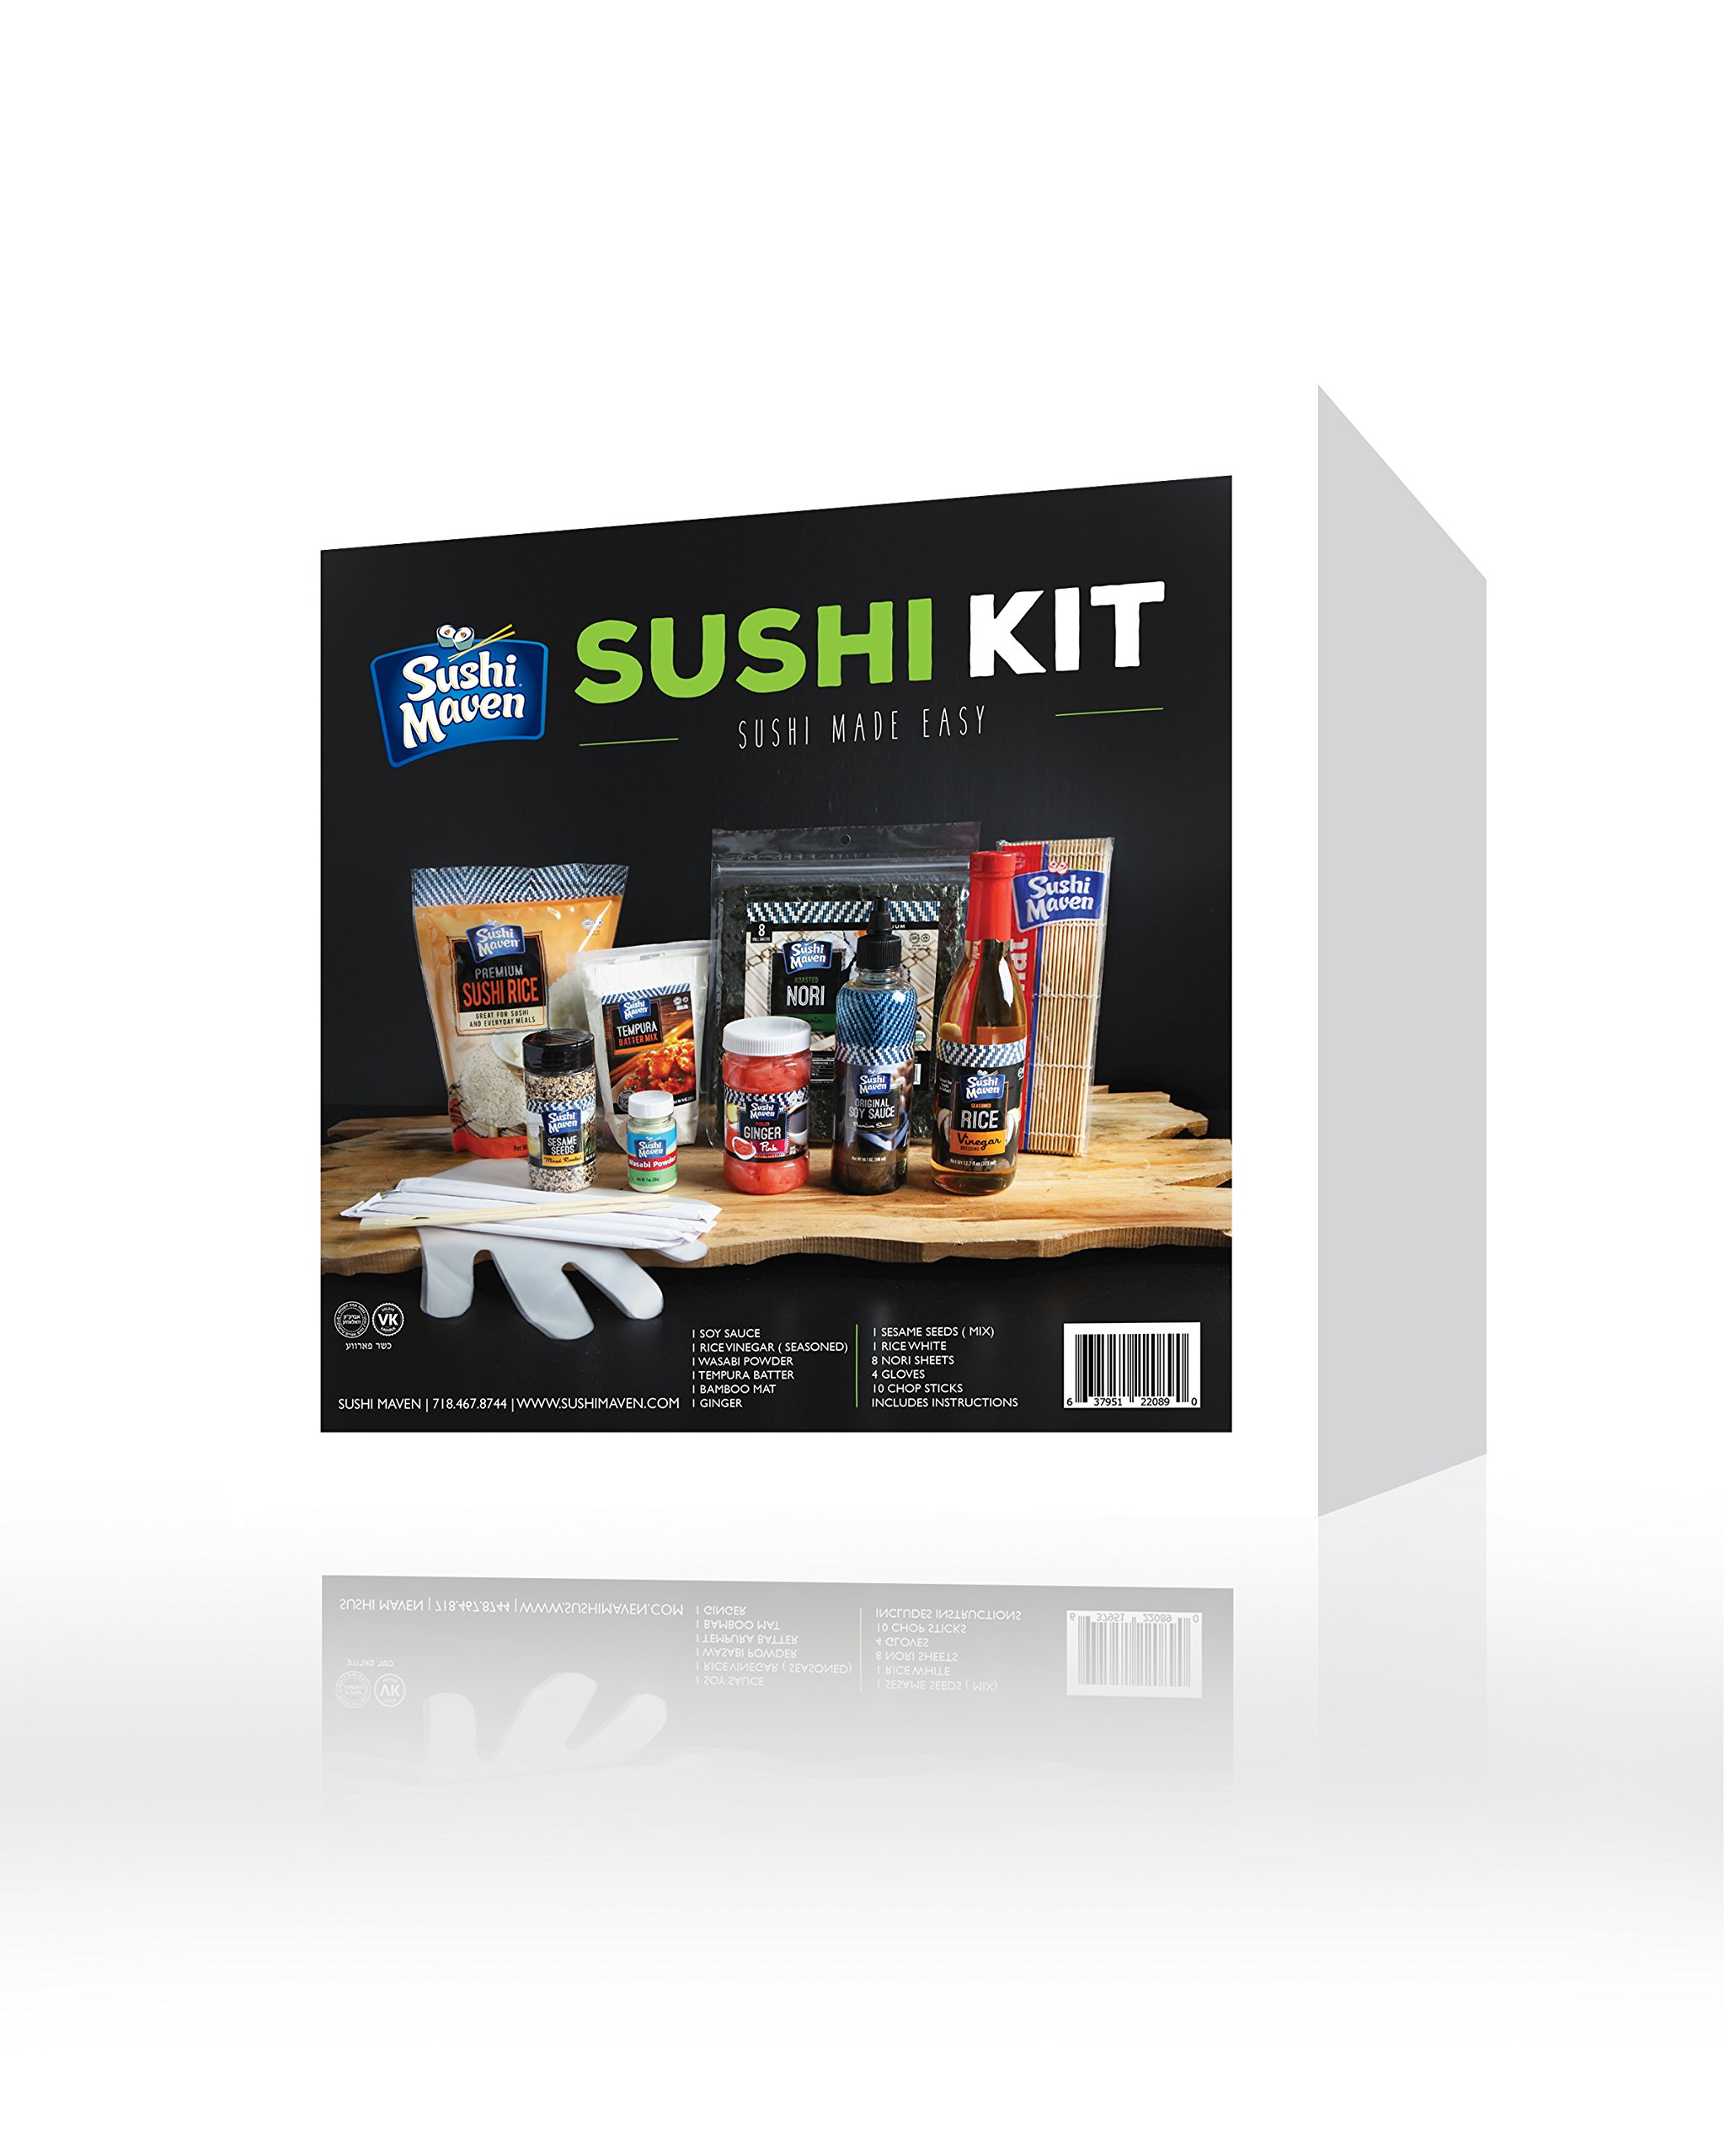 Sushi Kit- DIY Sushi Making Kit- At Home Japanese Roll Maker Set- Learn to Make Sushi Set- With Bamboo Mat Included- For 16 Assorted Rolls- Perfect Gift by Sushi Maven